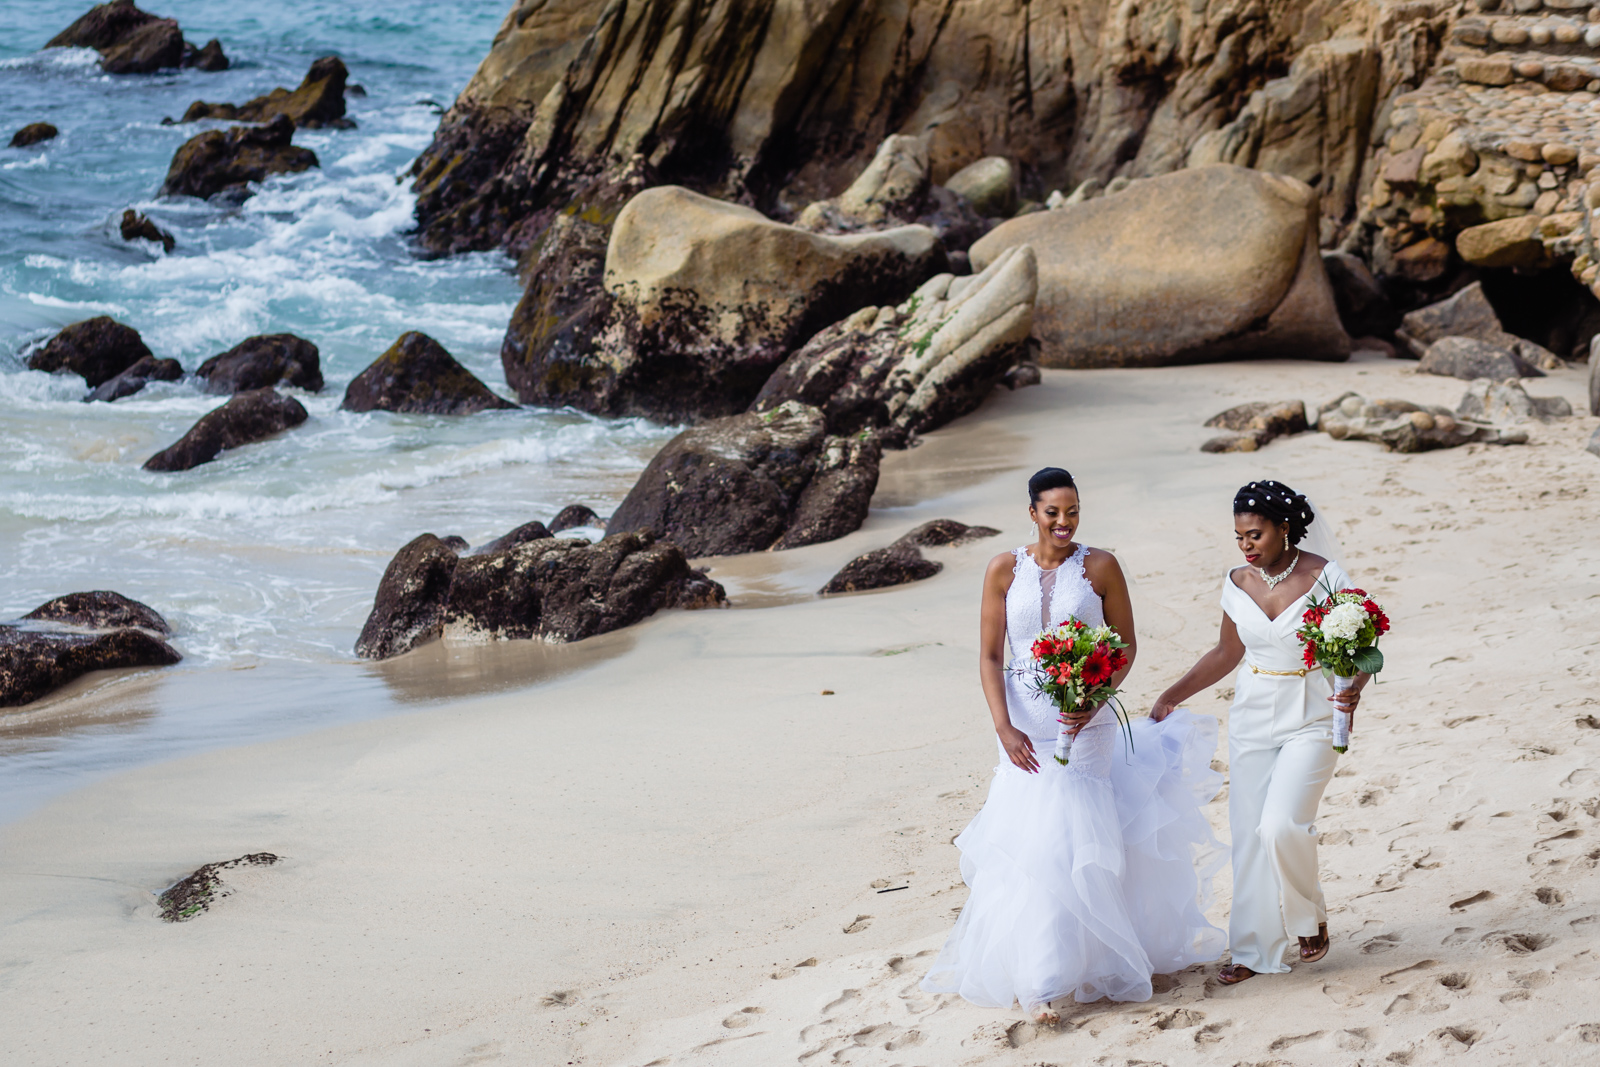 brides are walking together on the beach for go to the ceremony and smiling